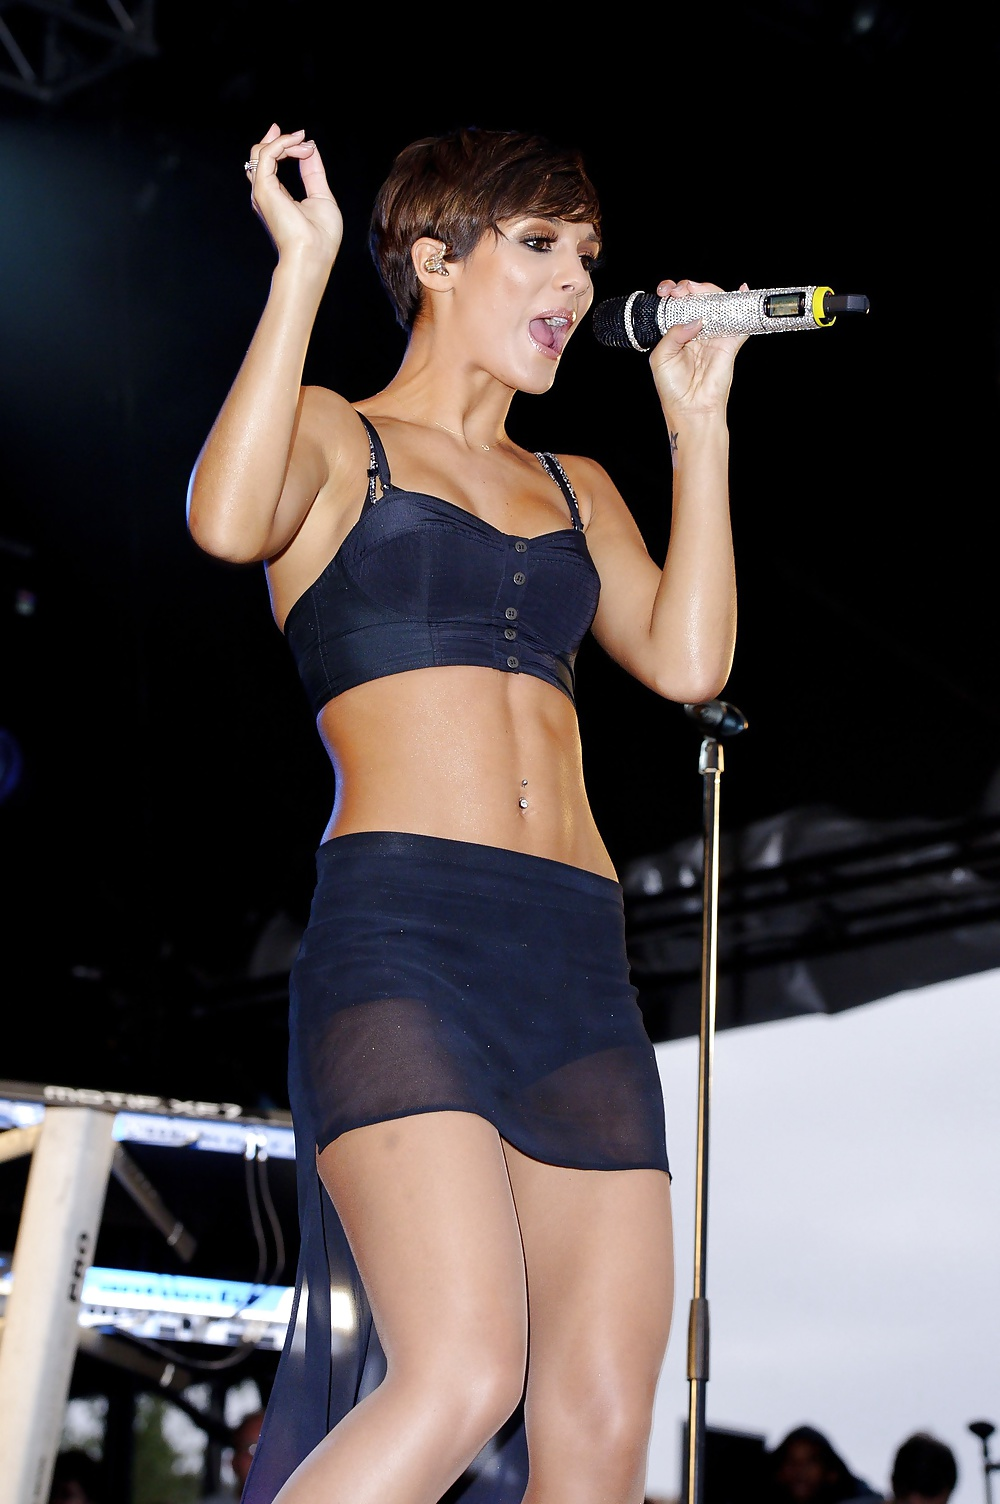 Frankie Sandford Showing Her Pussy Upskirt While Exiting